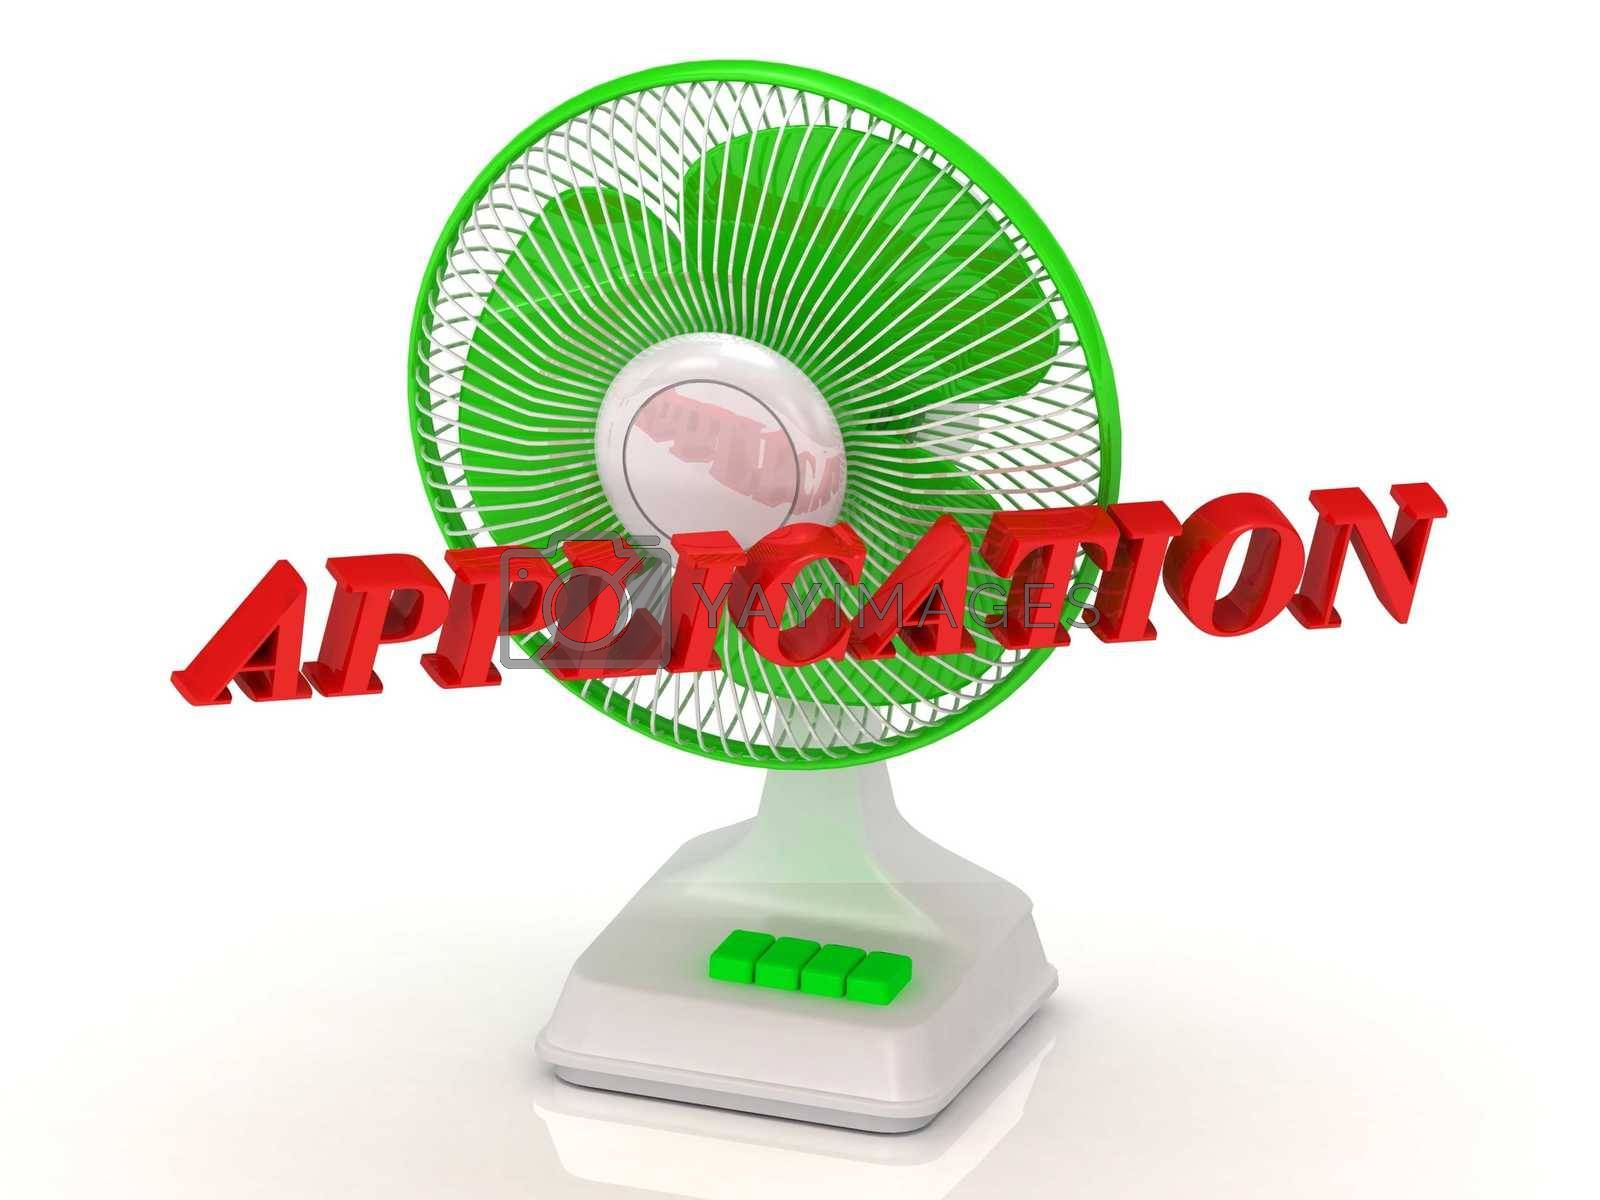 APPLICATION - Green Fan and bright color letters on a white background